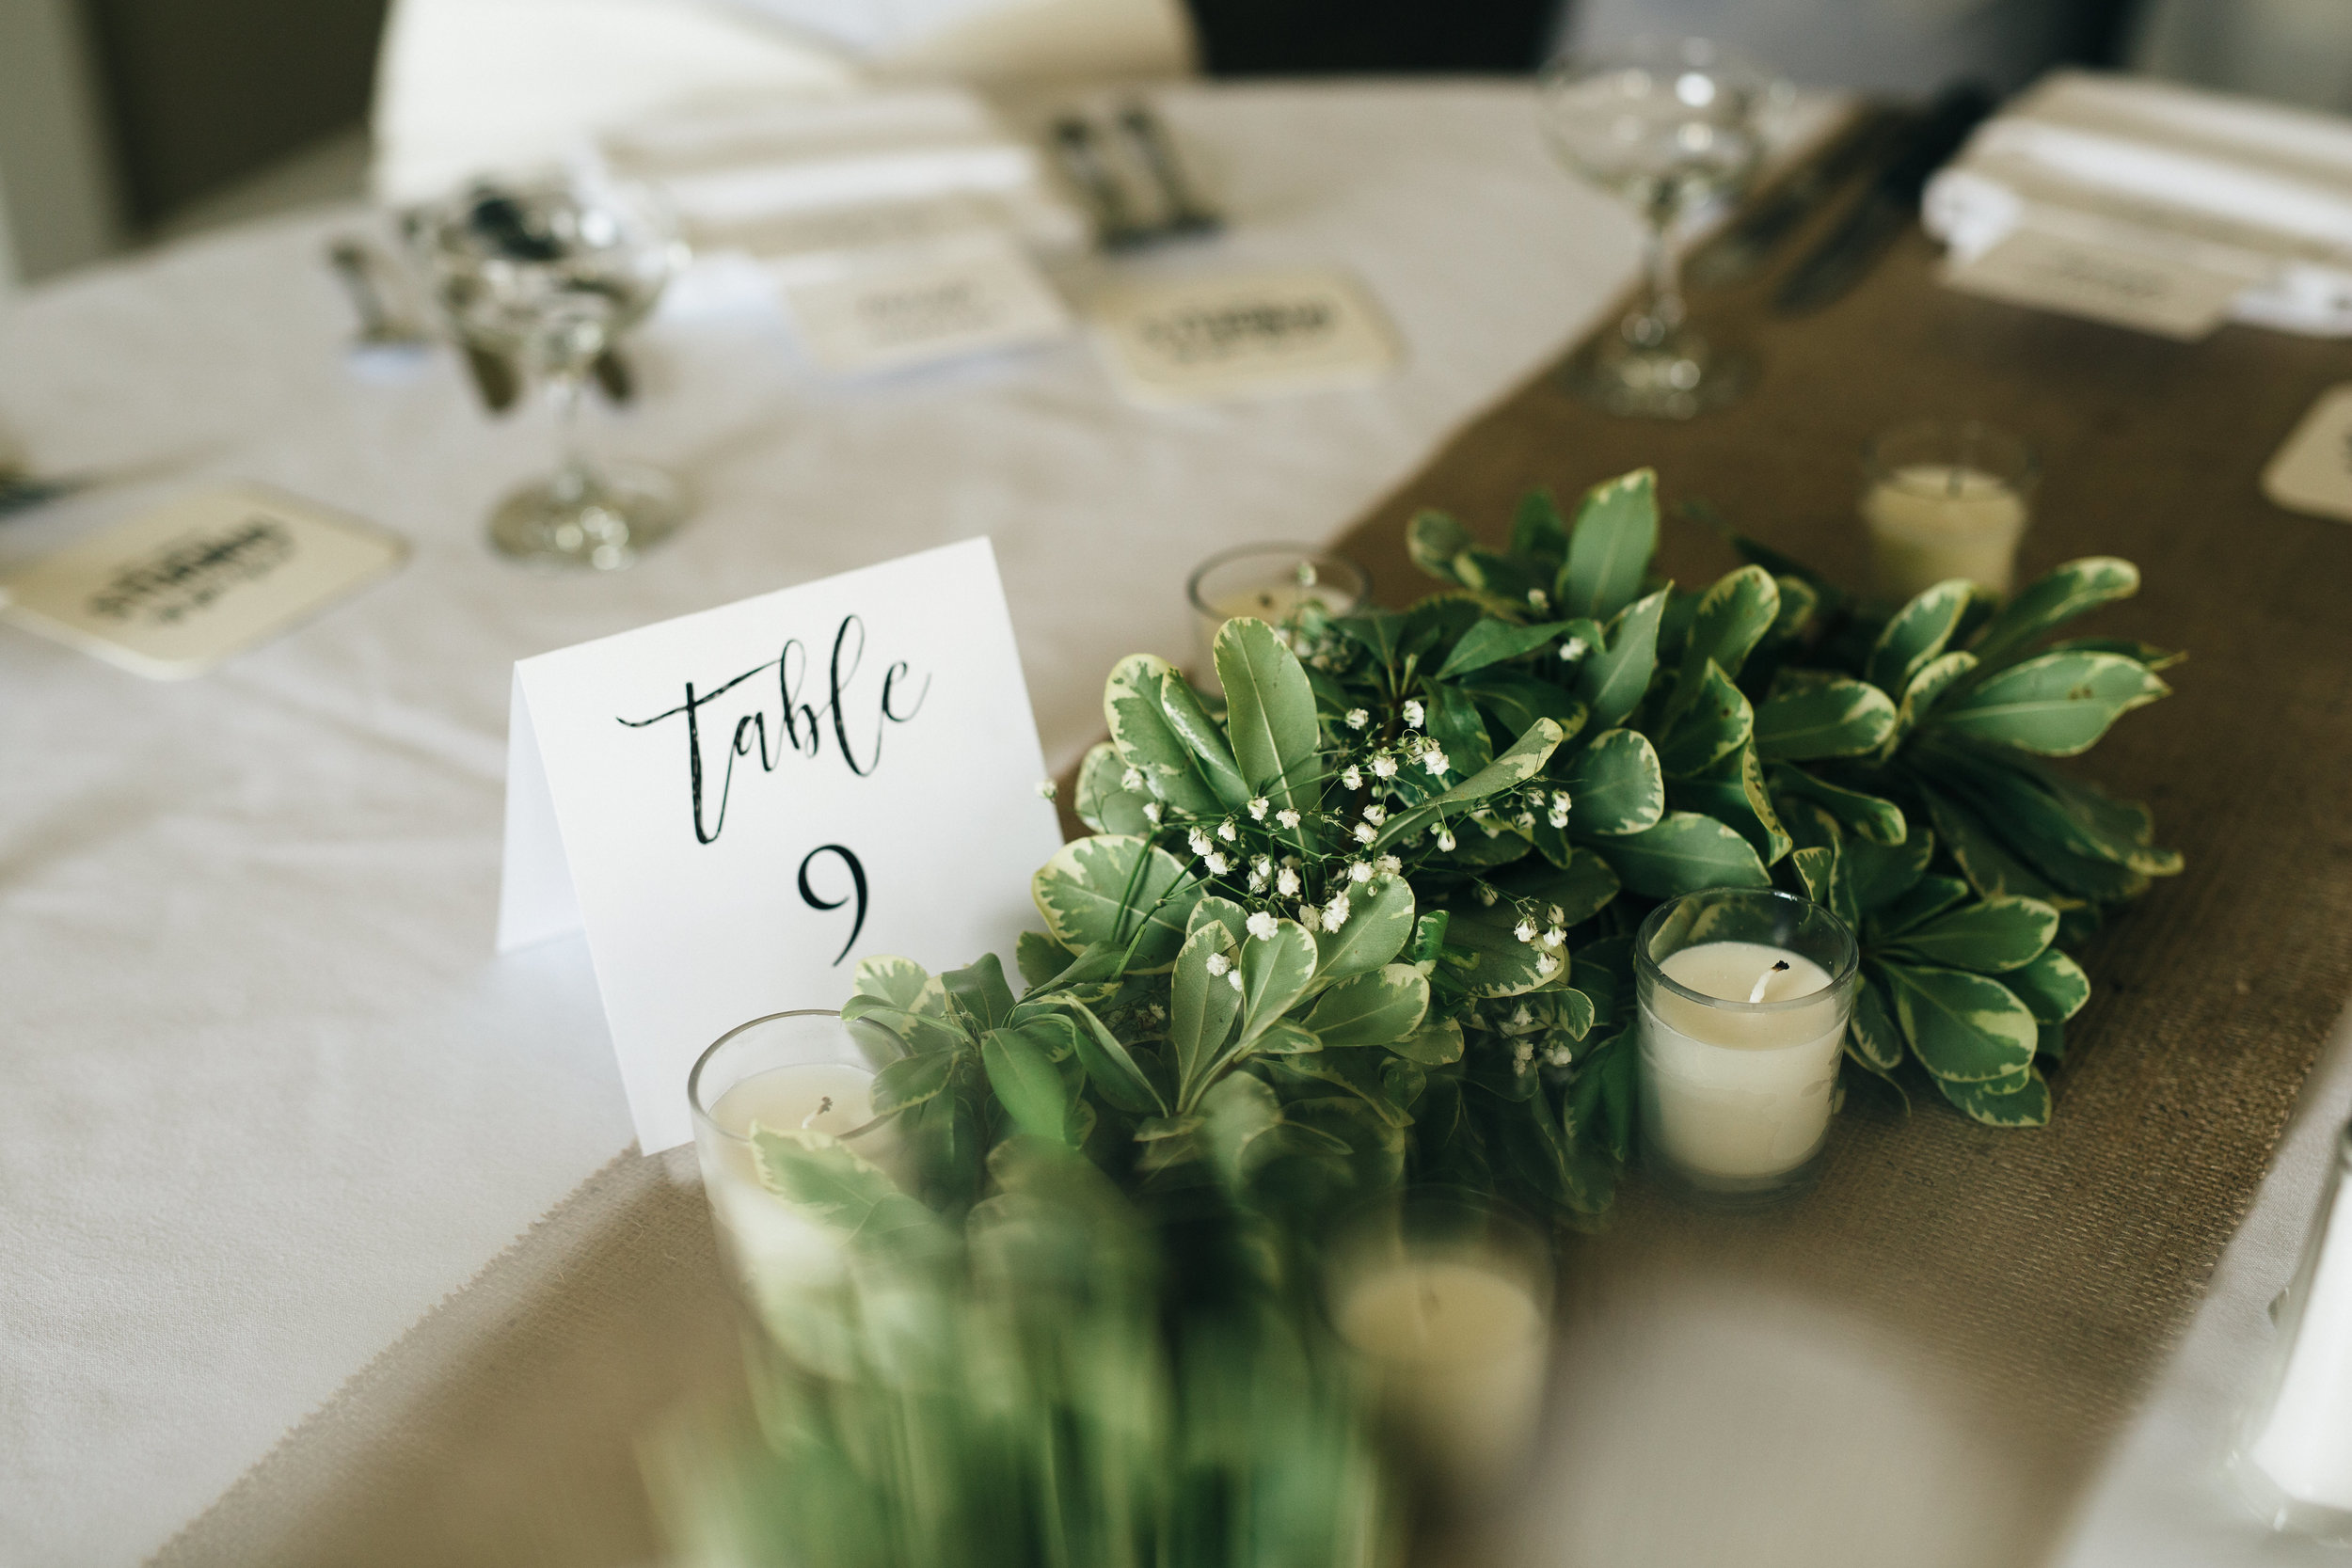 Wedding decor and table placers at Highland Meadows in Toledo, Ohio.